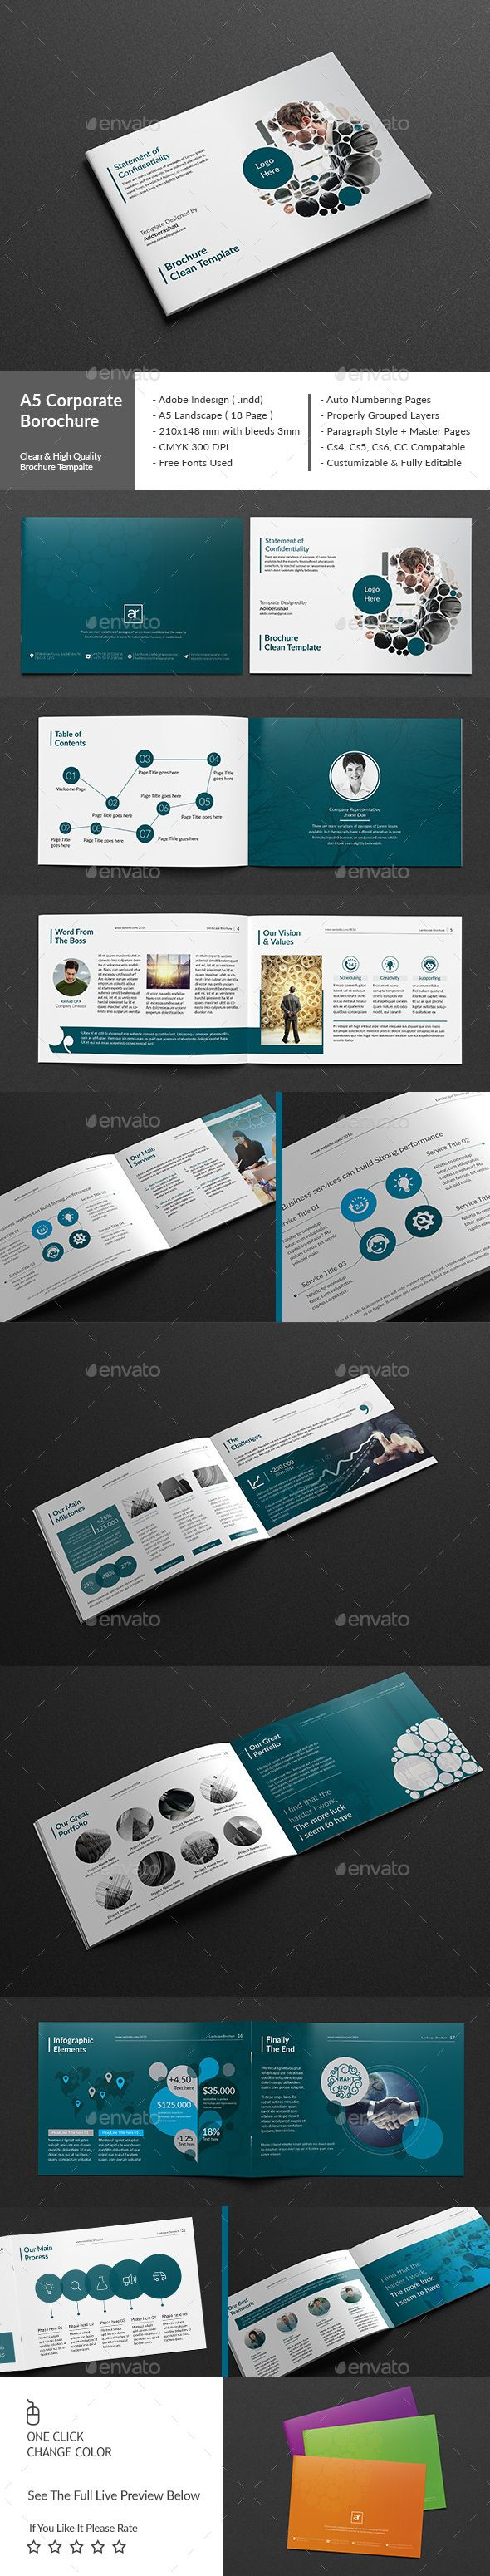 Clean Corporate brochure/report Template InDesign INDD #design Download: http://graphicriver.net/item/clean-corporate-brochurereport-template/14028310?ref=ksioks